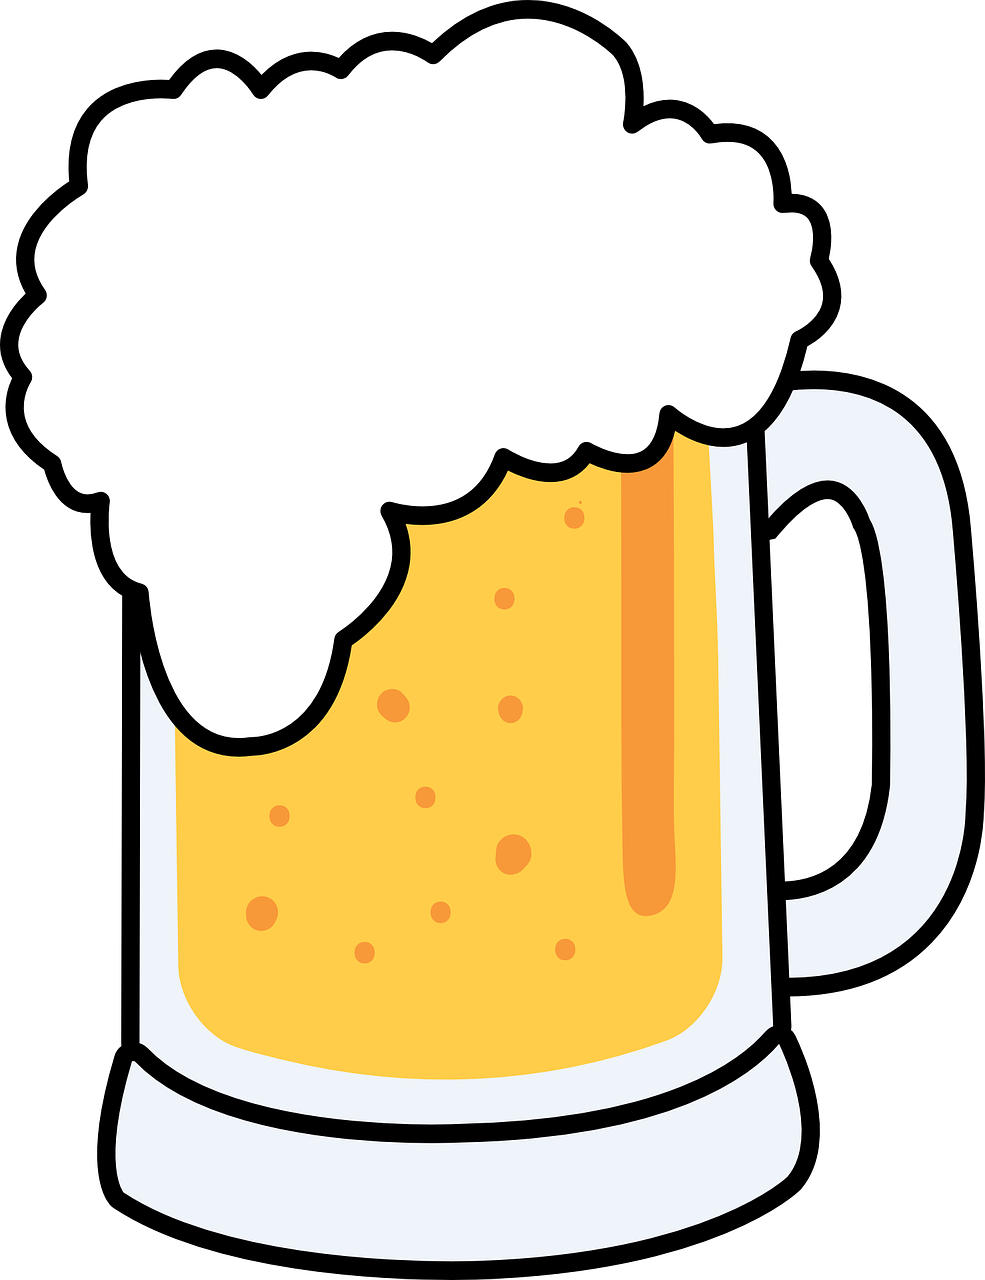 Free Cartoon Beer Mug Clip Art